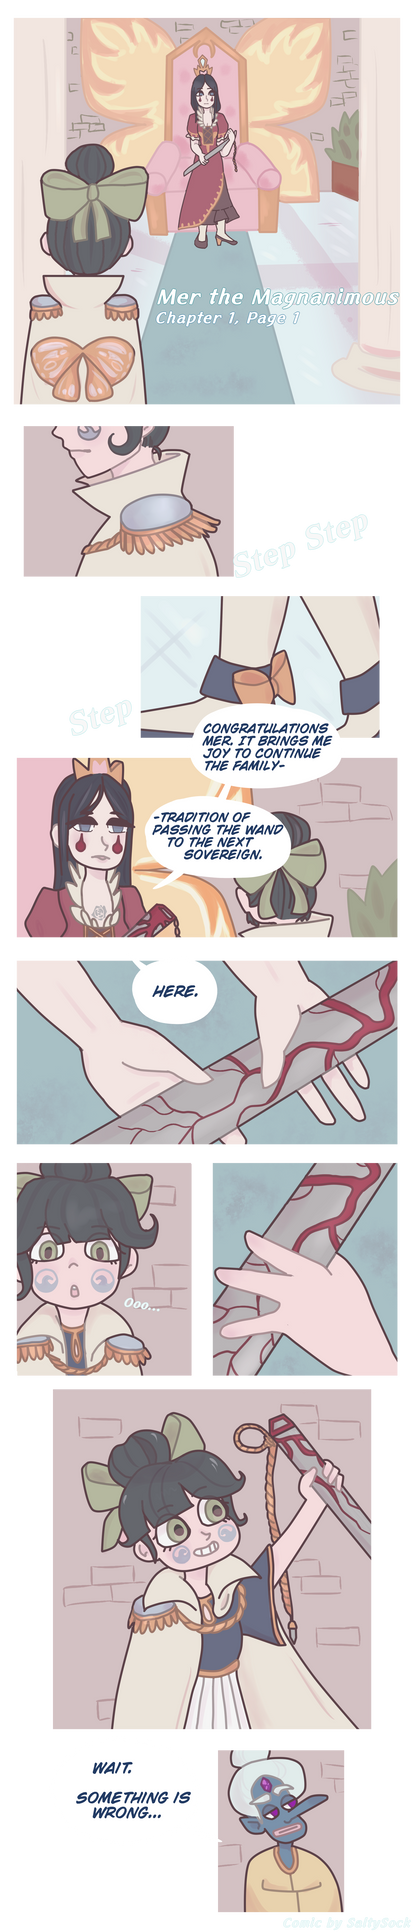 Mer the Magnanimous V1 Chapter 1 Page 1.